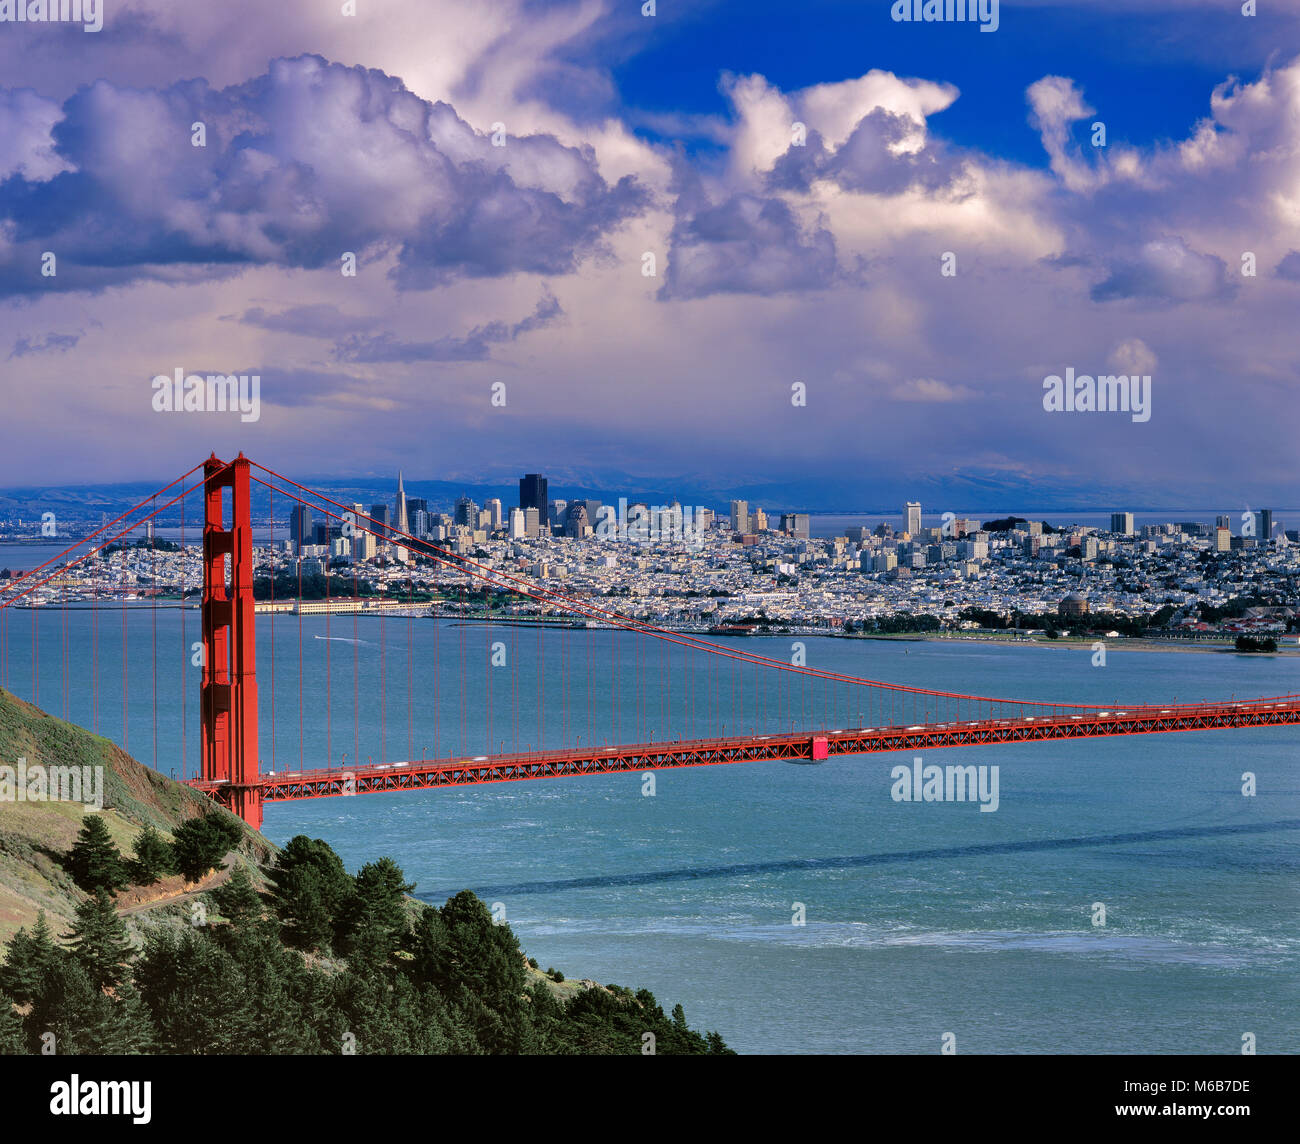 Storm Clouds, San Francisco Bay, San Francisco, California - Stock Image